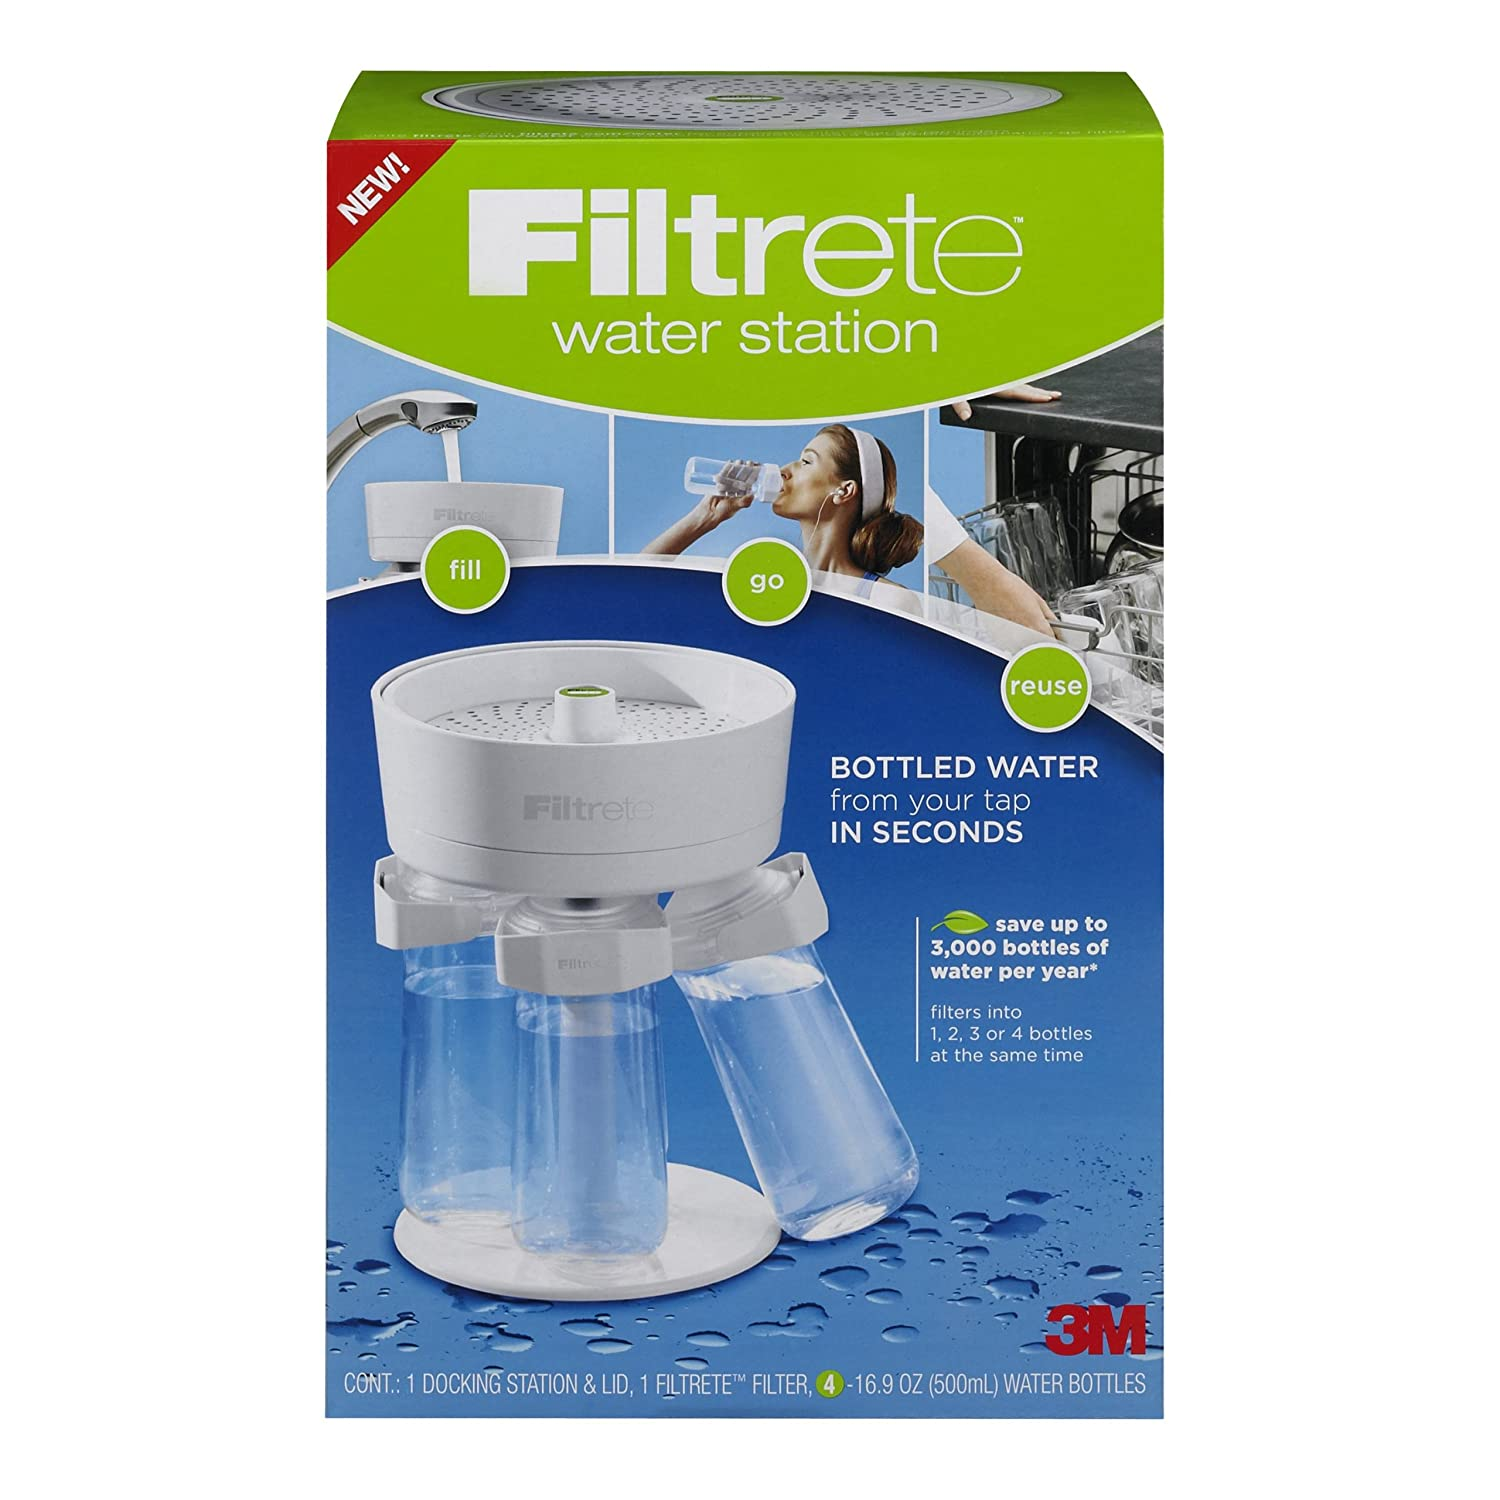 Amazon.com: 3M Filtrete Water Station: Pitcher Water Filters ...